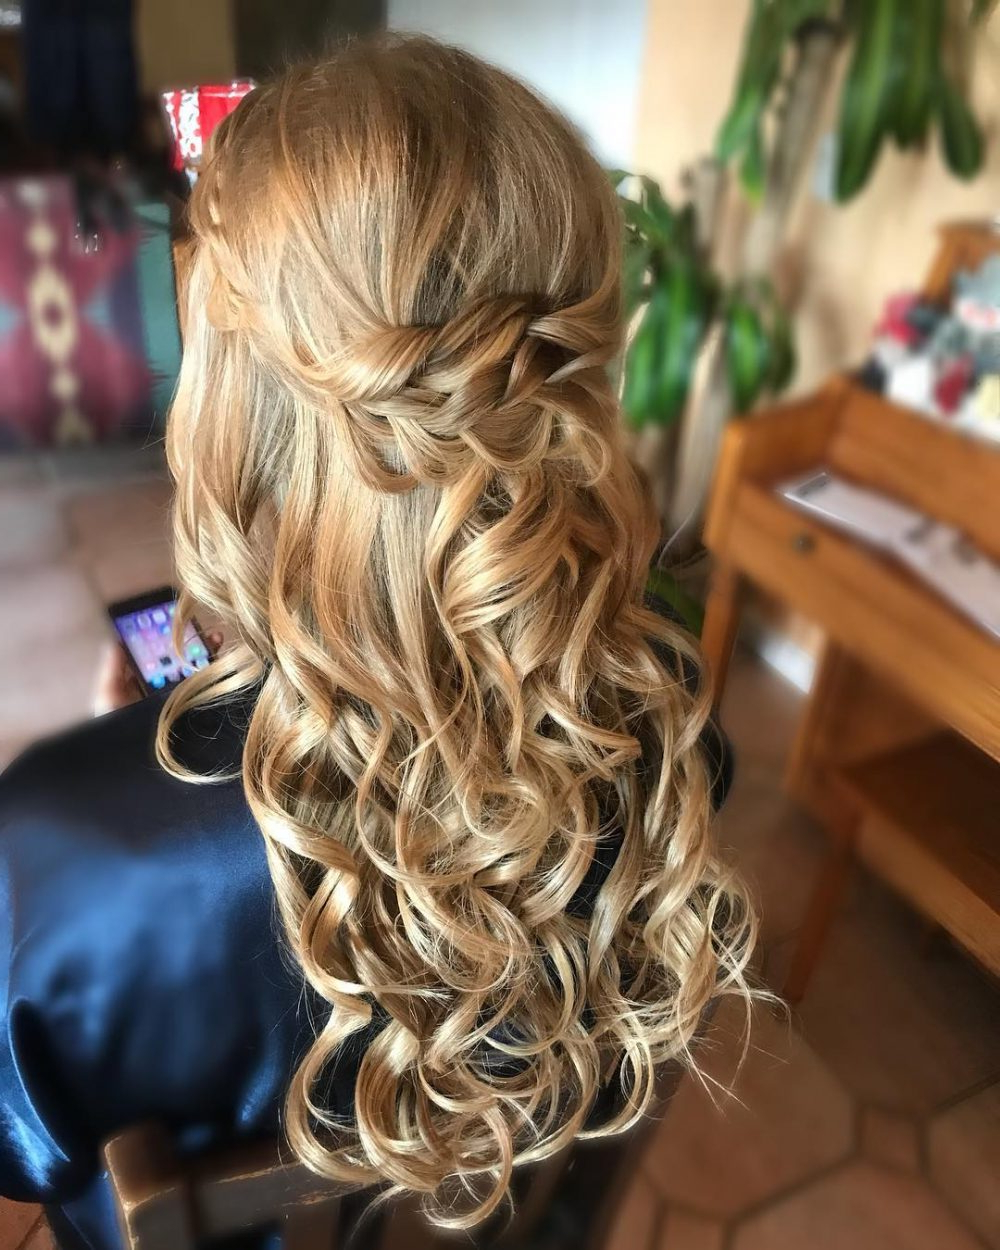 24 Gorgeous Wedding Hairstyles For Long Hair In 2019 Throughout 2018 Twisted And Pinned Half Up Wedding Hairstyles (Gallery 17 of 20)